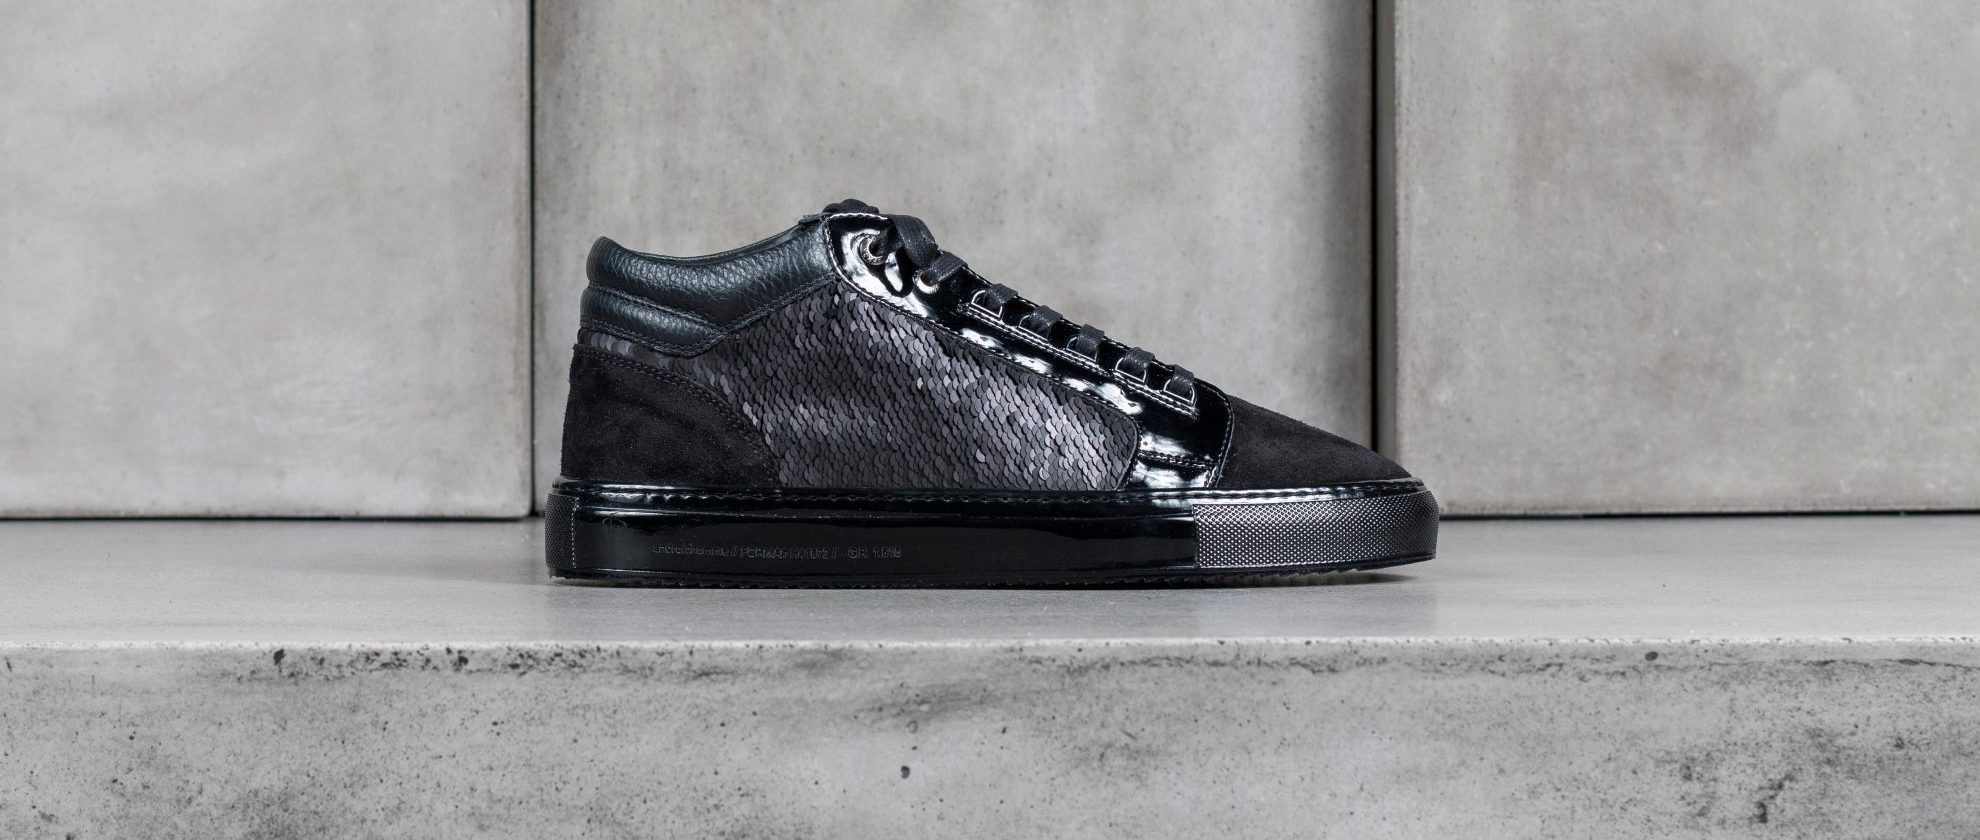 Staff Pick: Propulsion Trainers from Android Homme